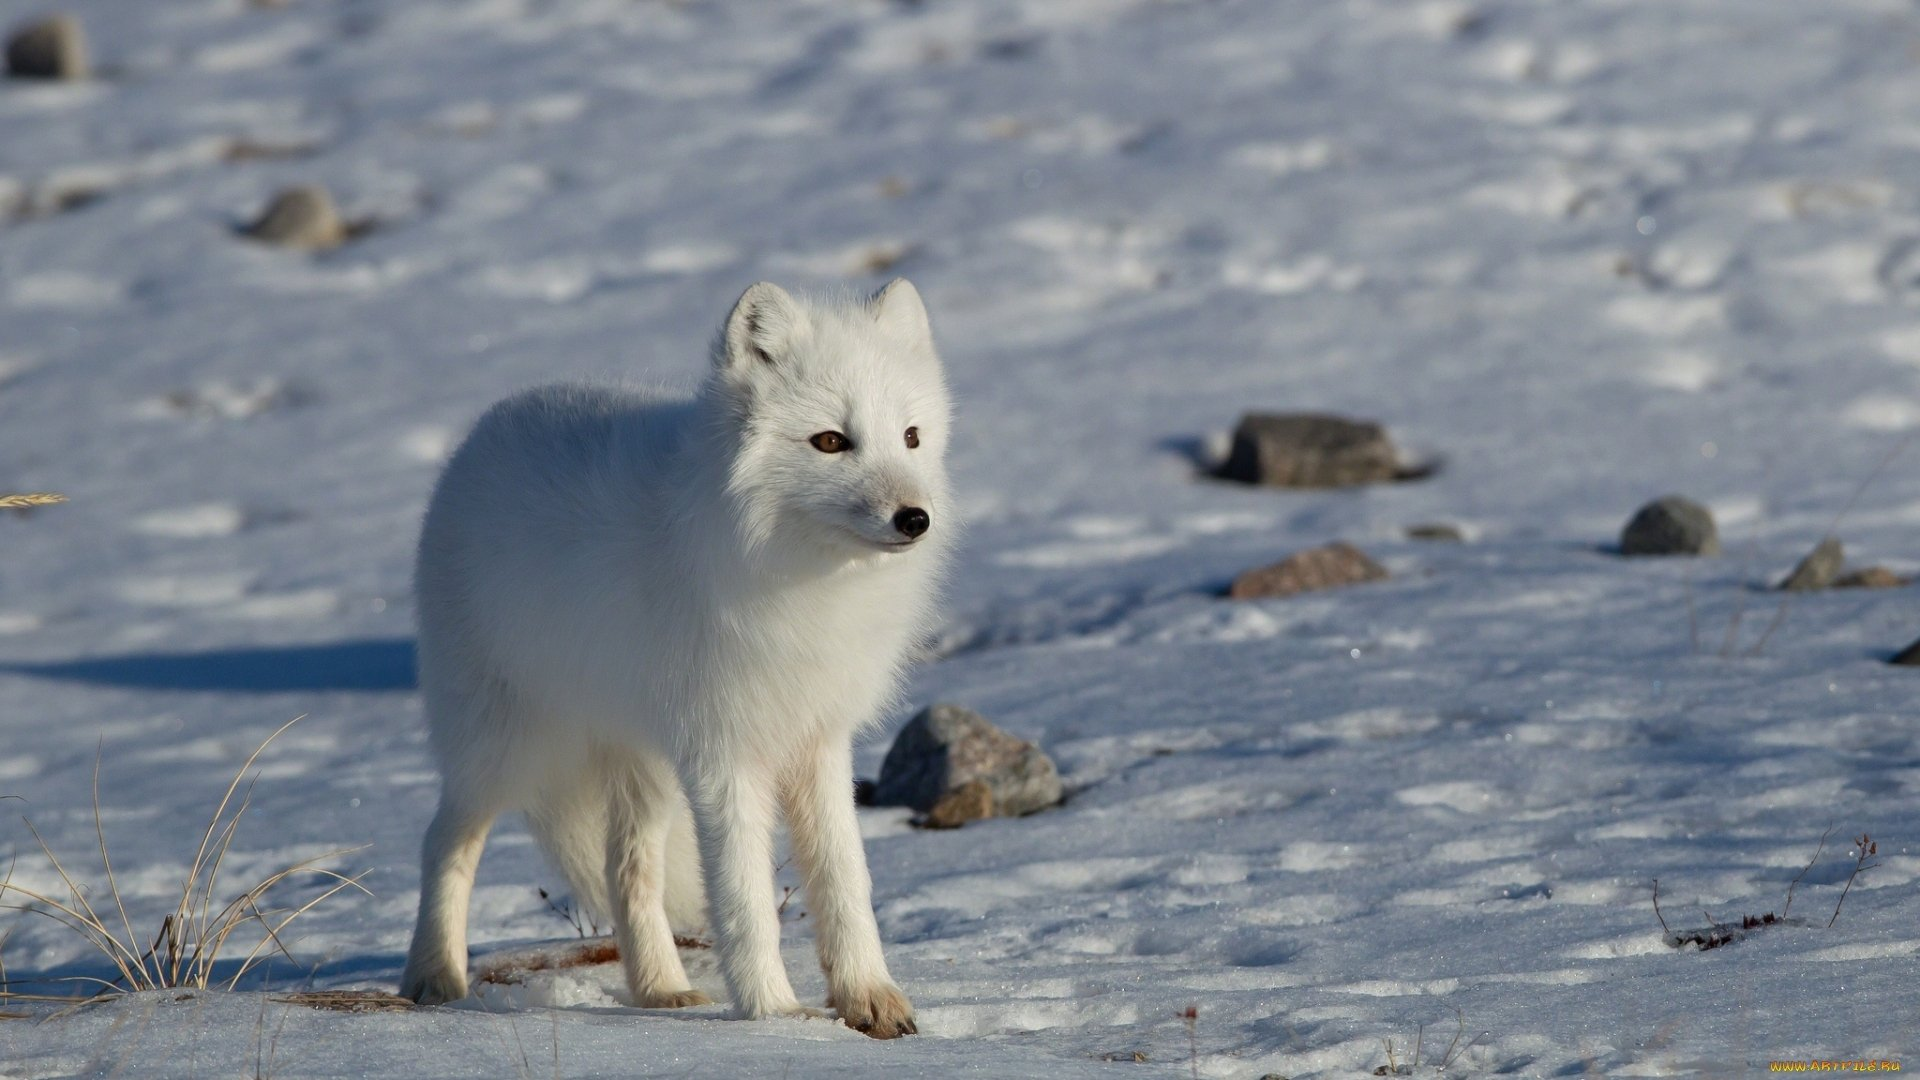 Cute Baby Full Hd Wallpaper Download Arctic Fox Full Hd Wallpaper And Background Image